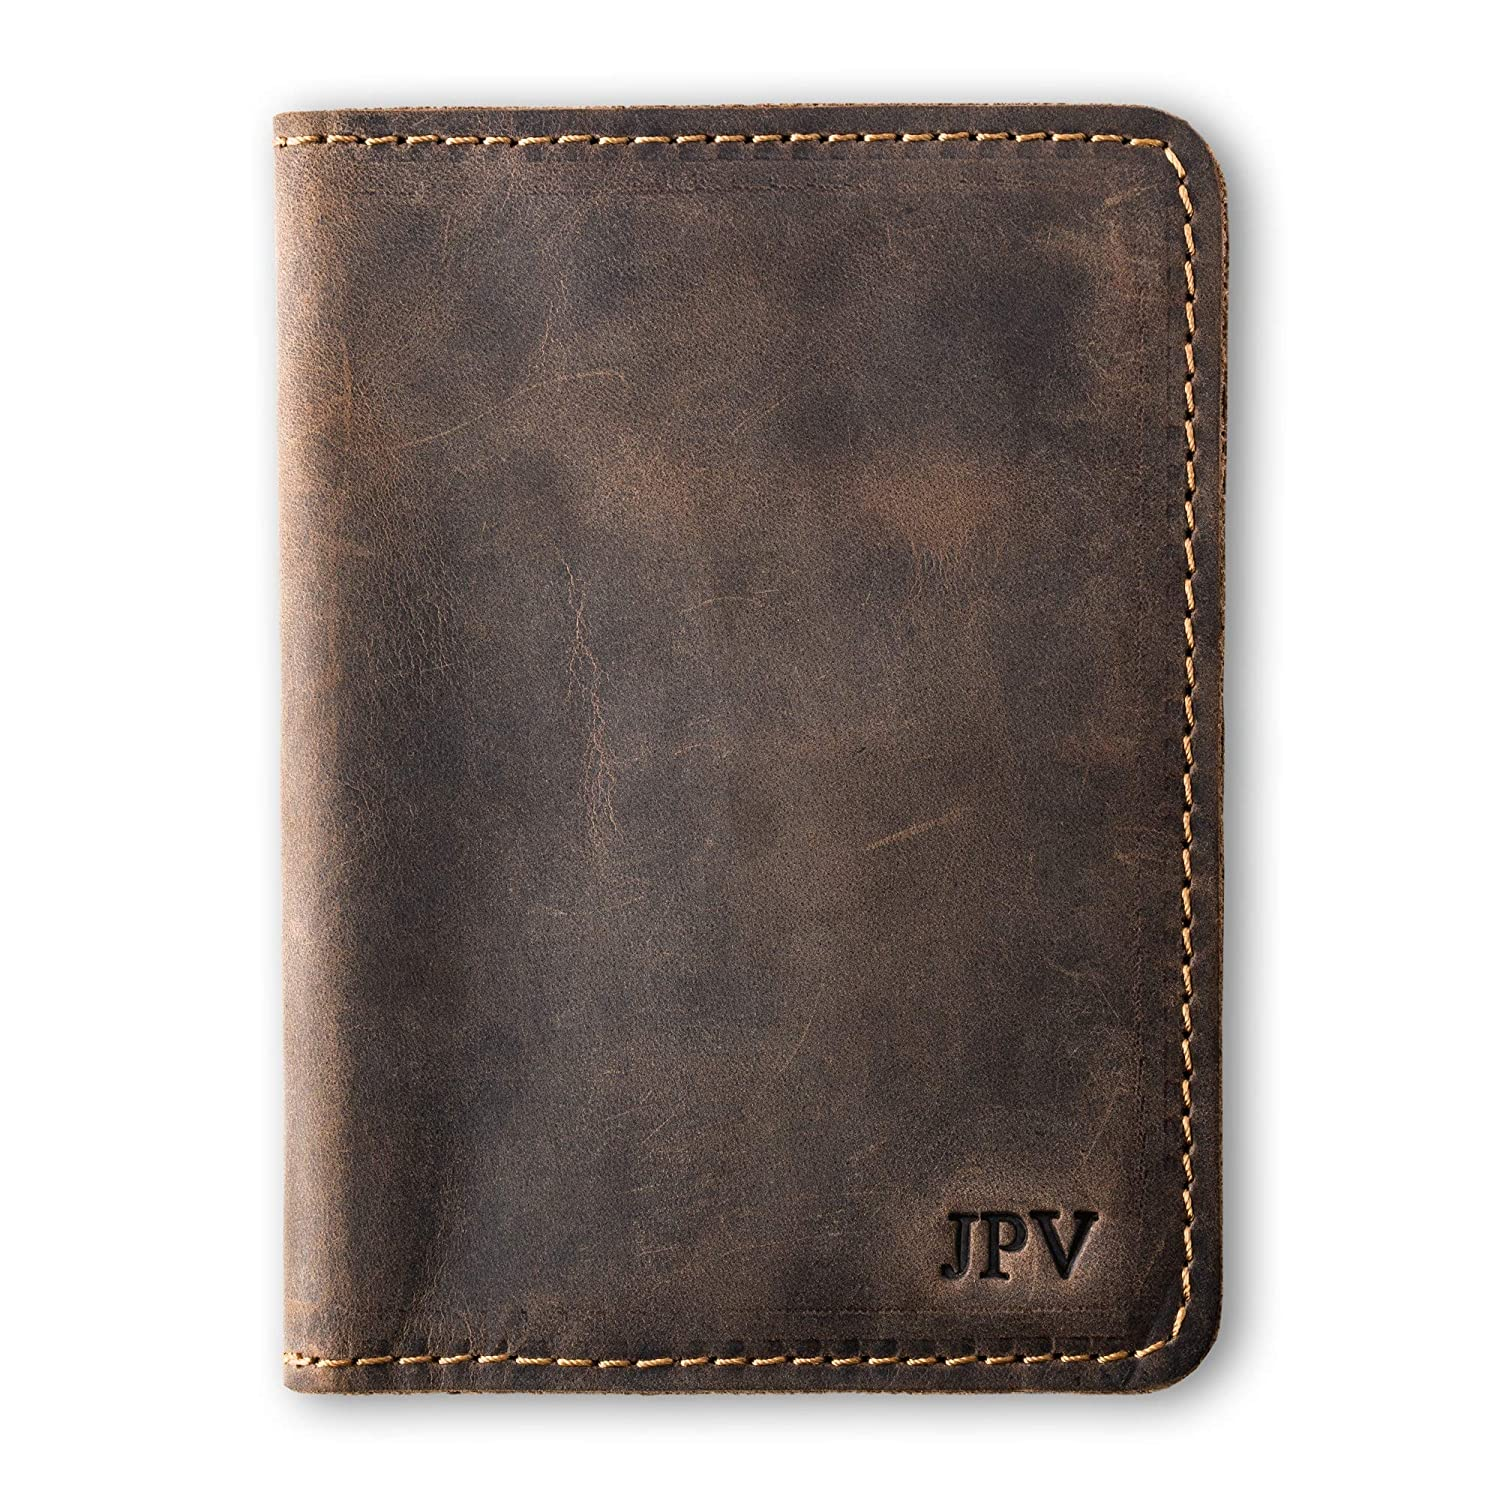 Pegai Personalized Passport Wallet, Distressed Leather Travel Wallet, Handcrafted Soft Leather Passport Holder, Rustic Passport Cover - Pike Chestnut Brown